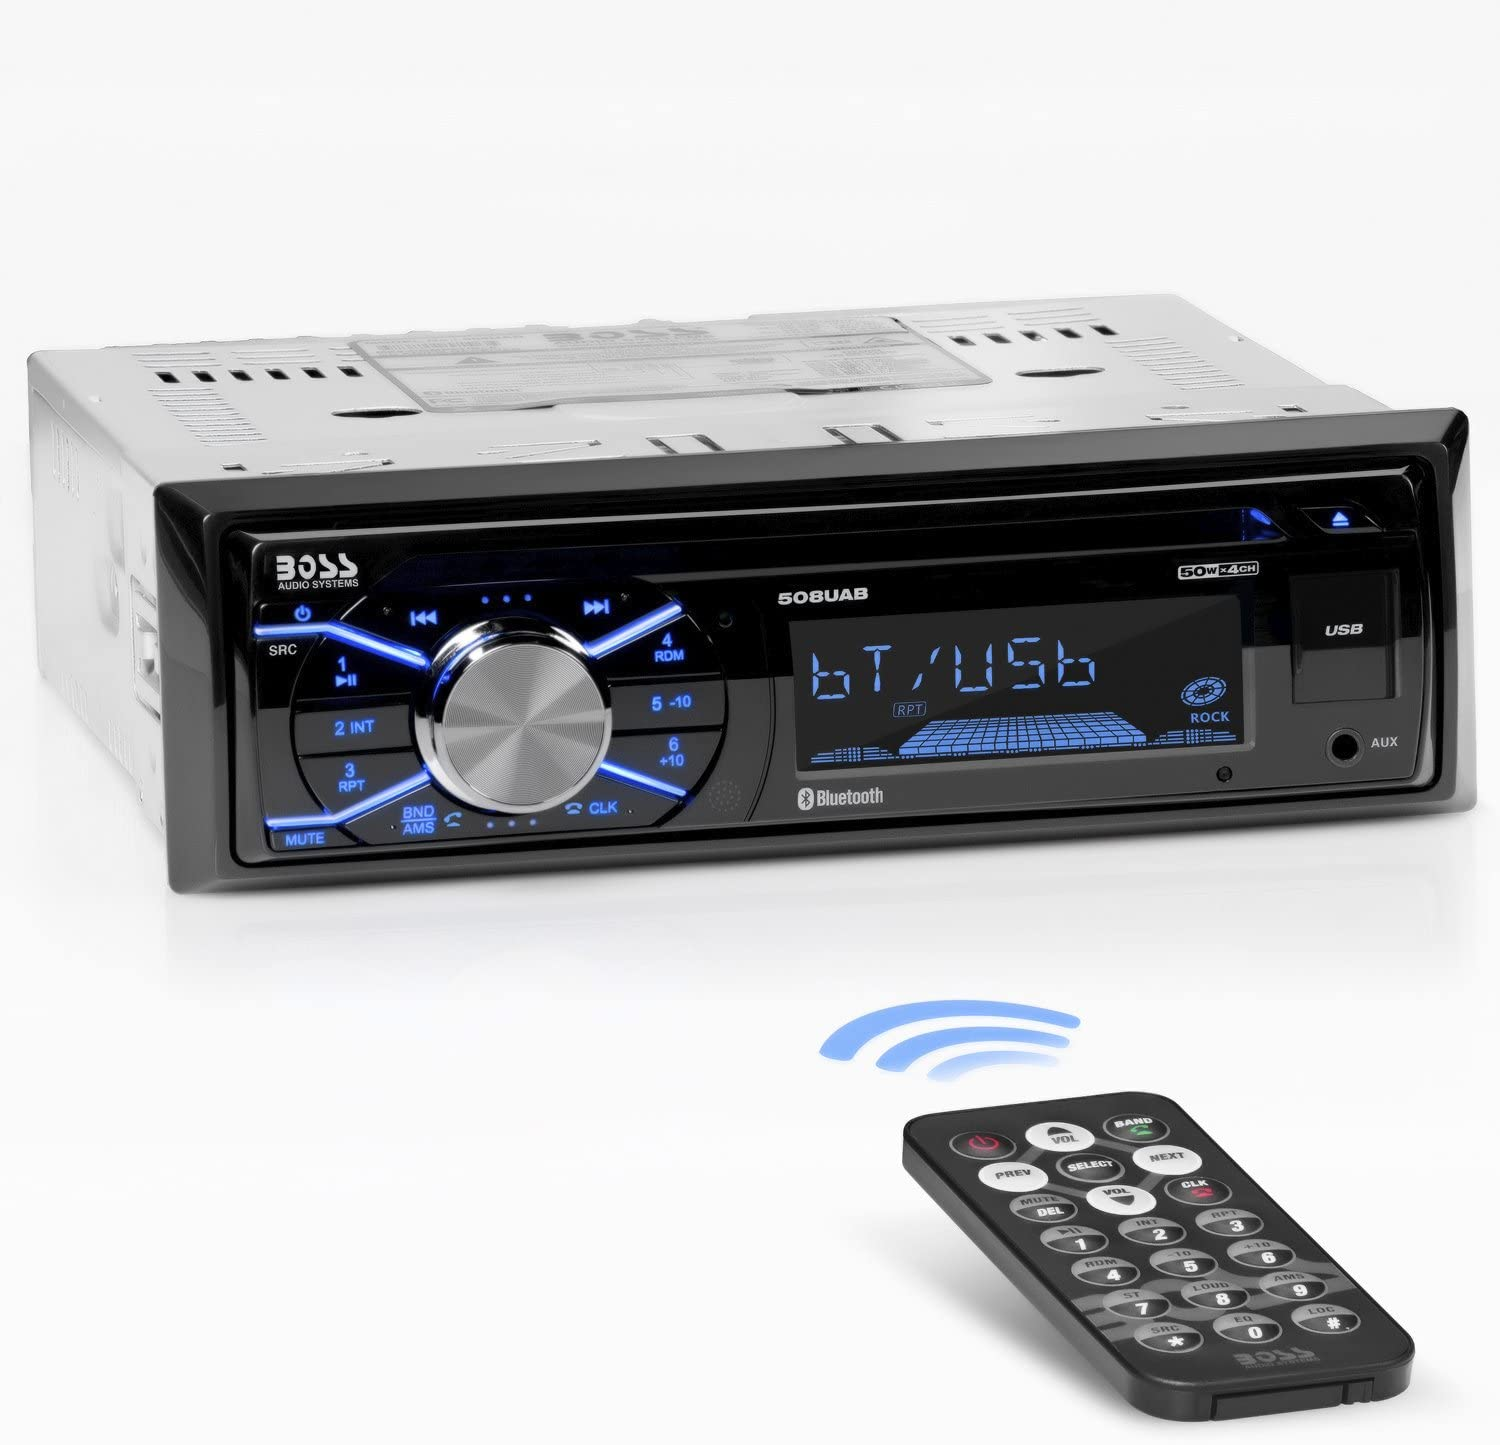 Amazon.com: Boss Audio Systems 508UAB Multimedia Car Stereo - Single Din,  Bluetooth Audio/Hands-Free Calling, Built-in Microphone, CD/MP3/USB/AUX  Input, AM/FM Radio Receiver, Wireless Remote Control: Car ElectronicsAmazon.com